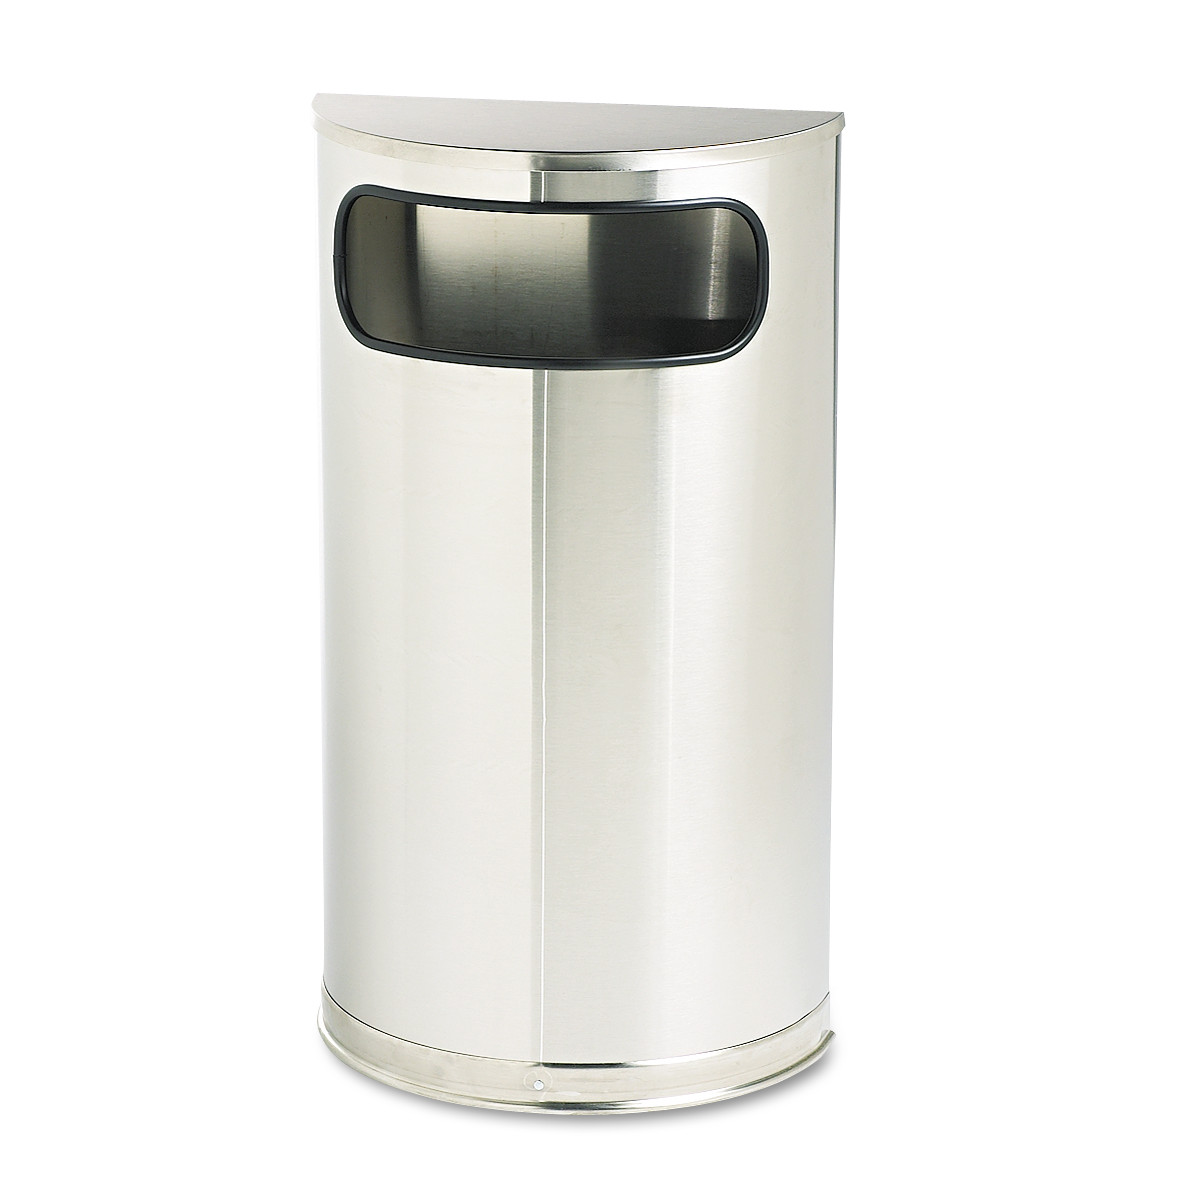 Rubbermaid Commercial European & Metallic Series Receptacle, Half-Round, 9gal, Satin Stainless